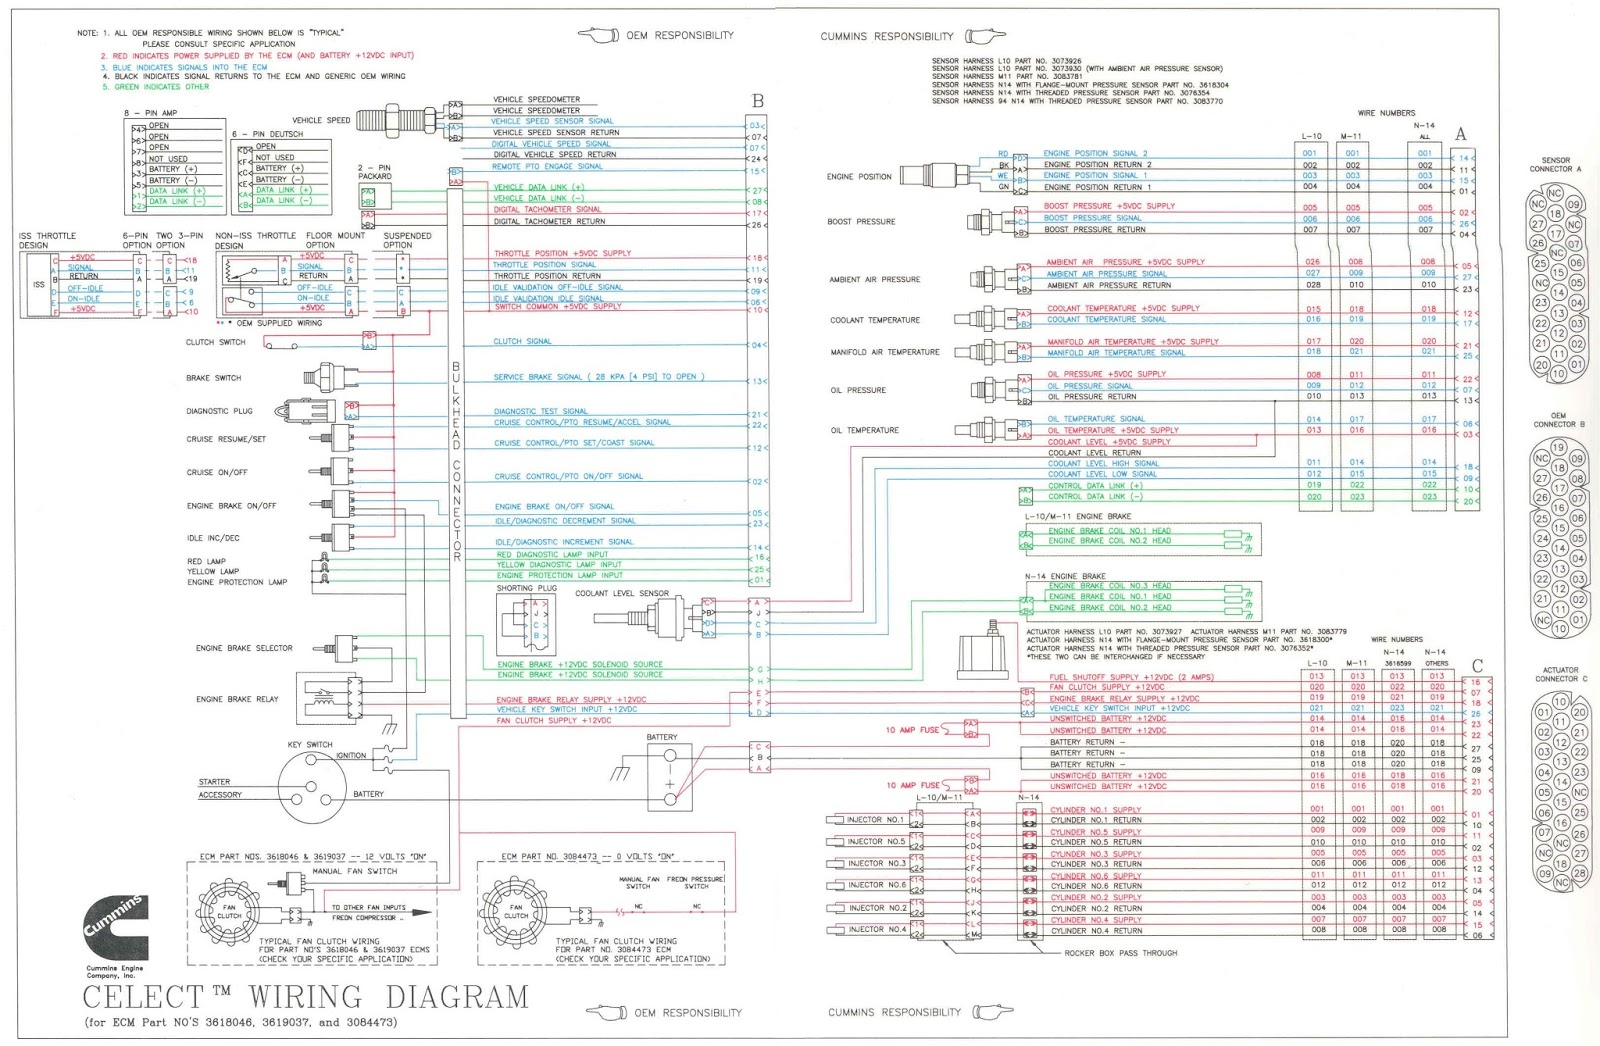 strat plus wiring diagram n14 cummins ecm wiring diagram download #7